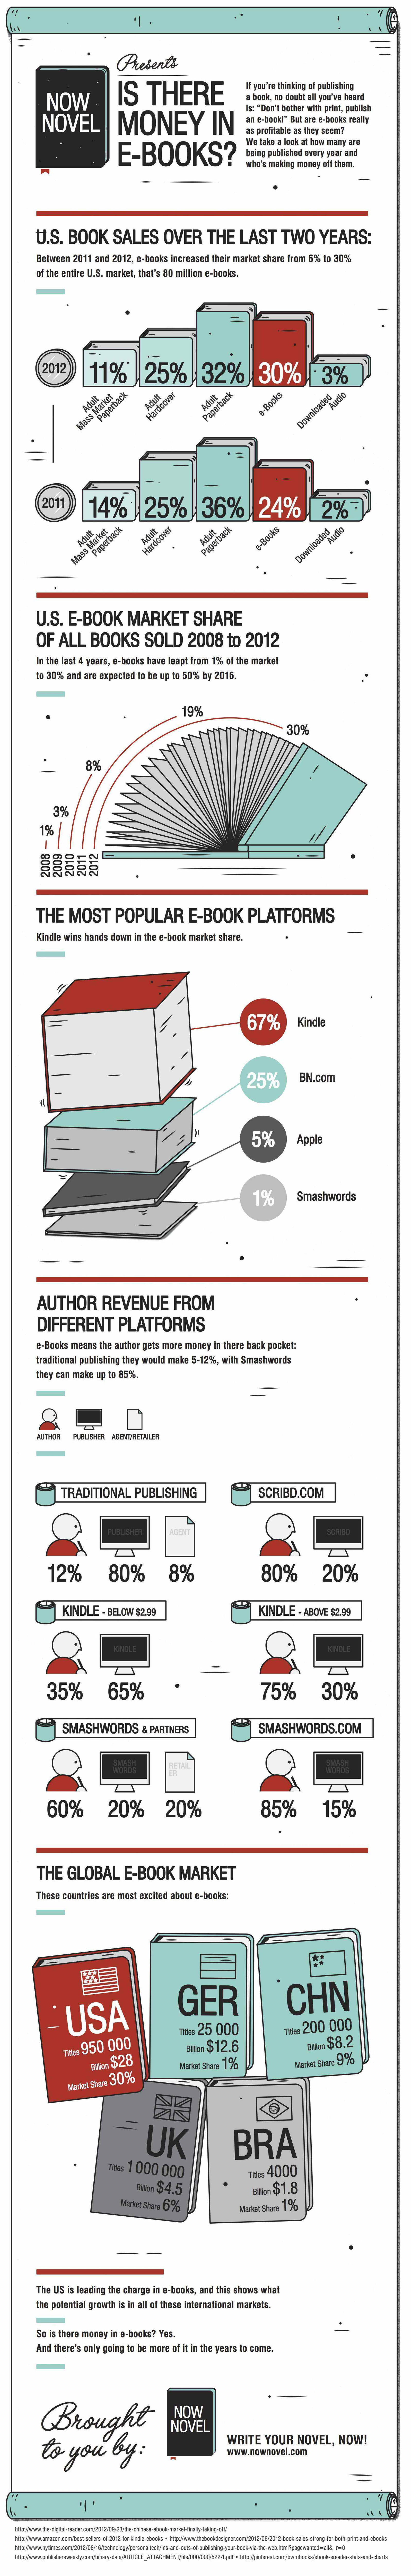 Is There Money in e-Books?